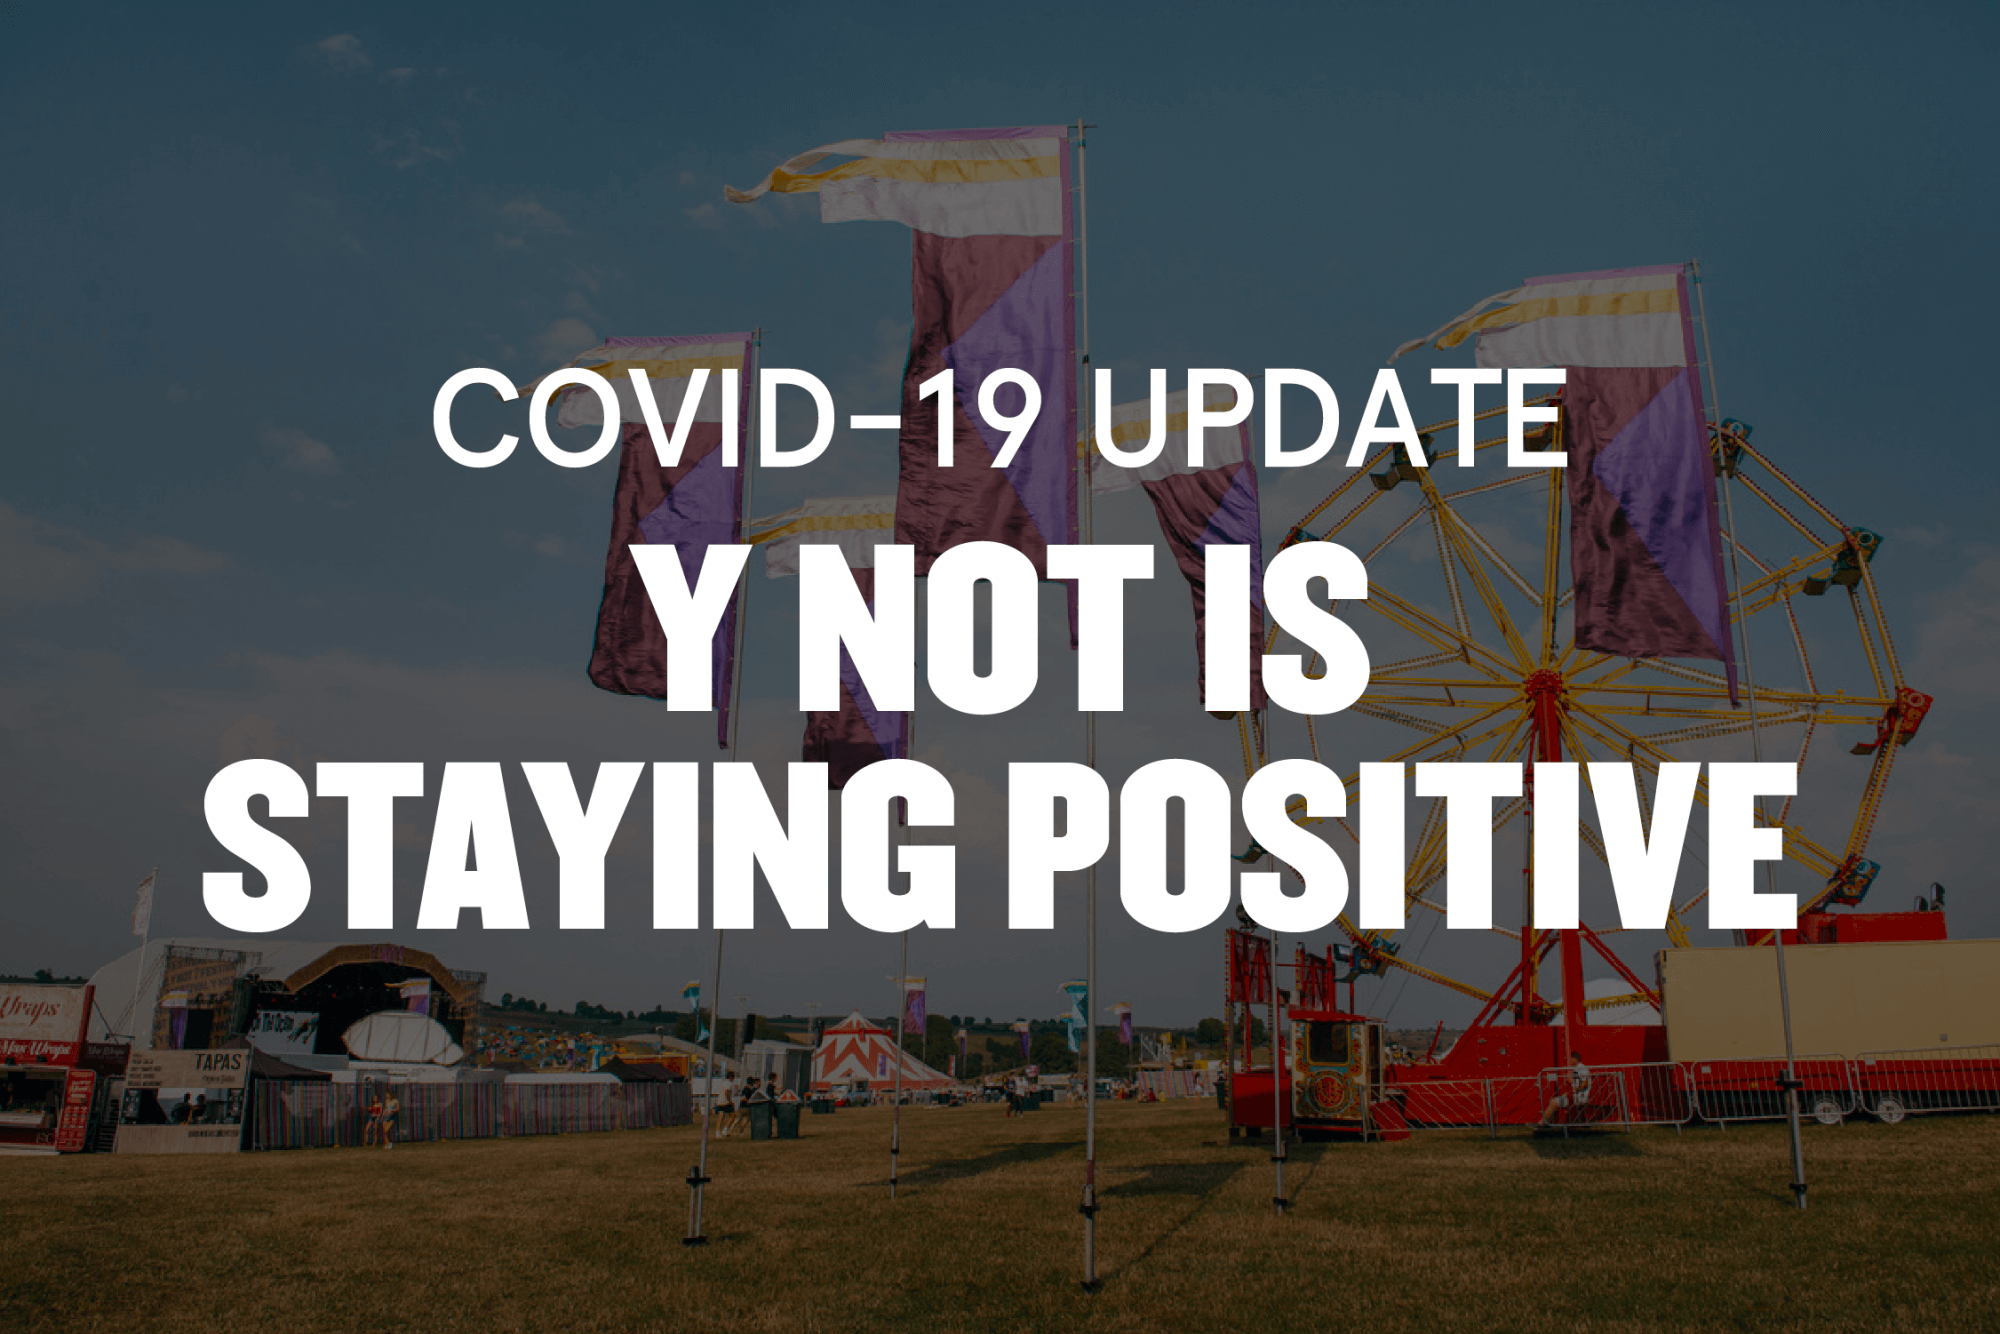 COVID-19 UPDATE: Y NOT IS STAYING POSITIVE